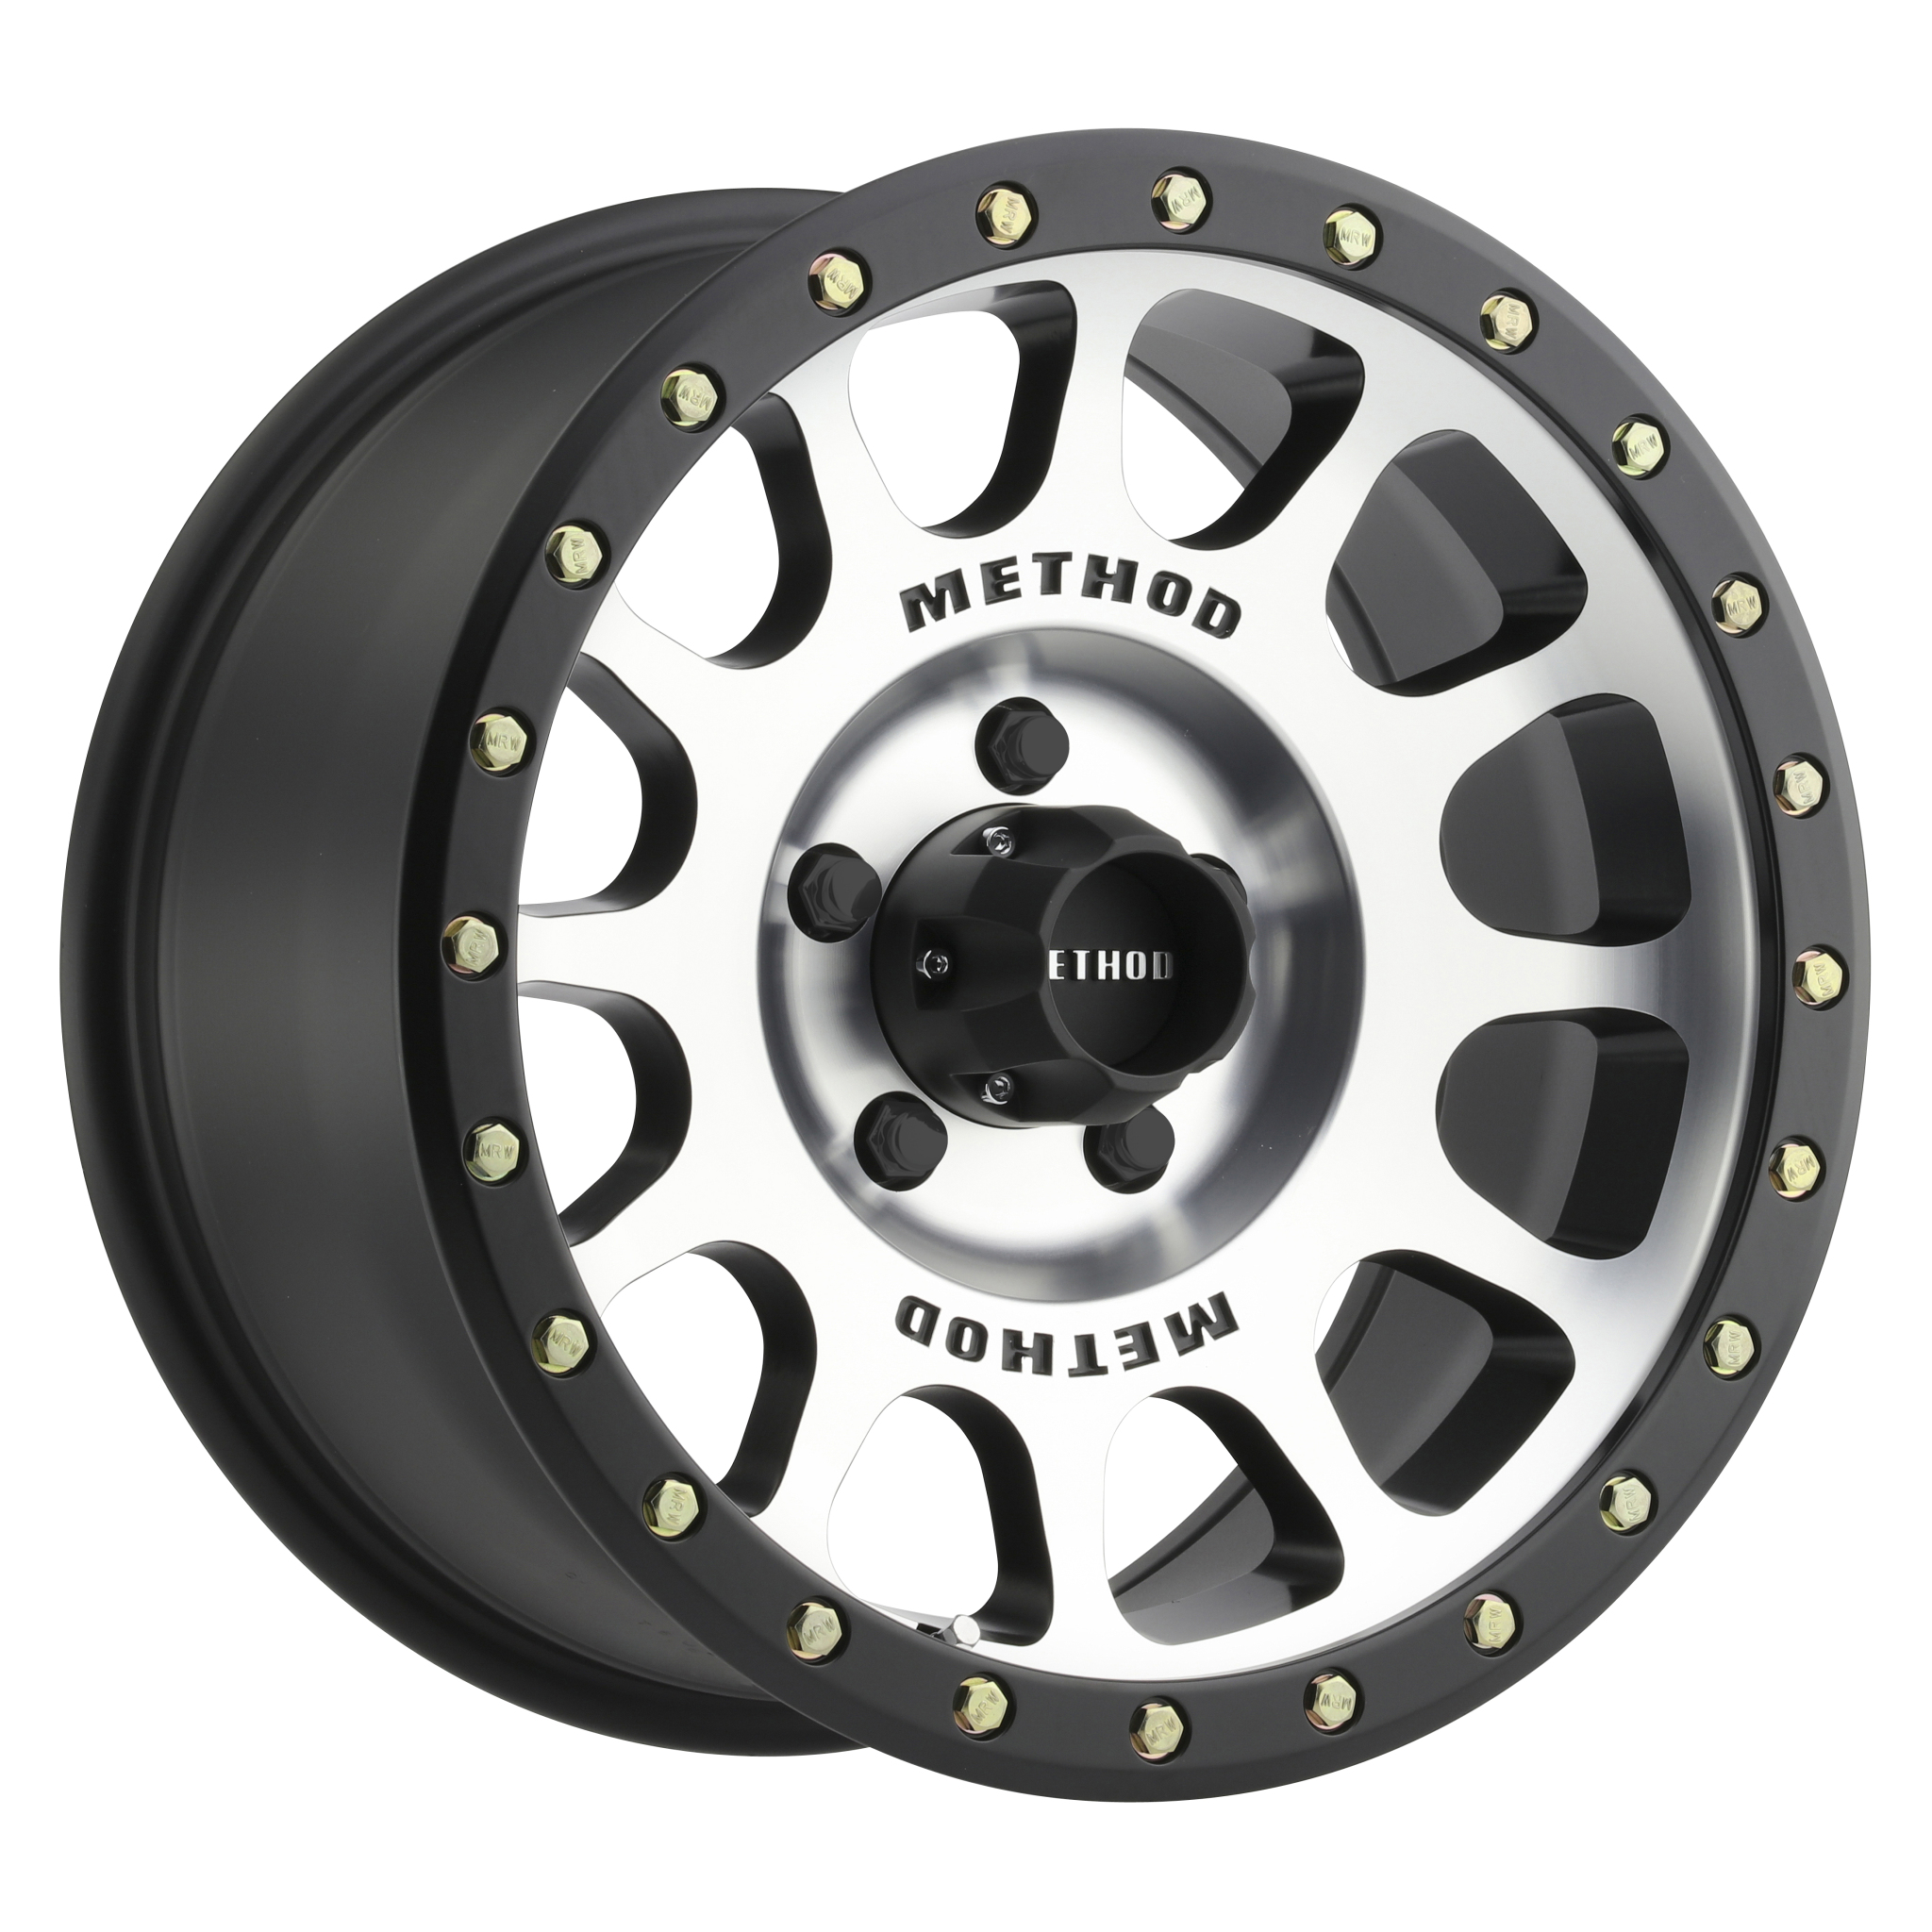 Method 305 NV, 18x9, +25mm Offset, 5x150, 116.5mm Centerbore, Machined/Black Street Loc